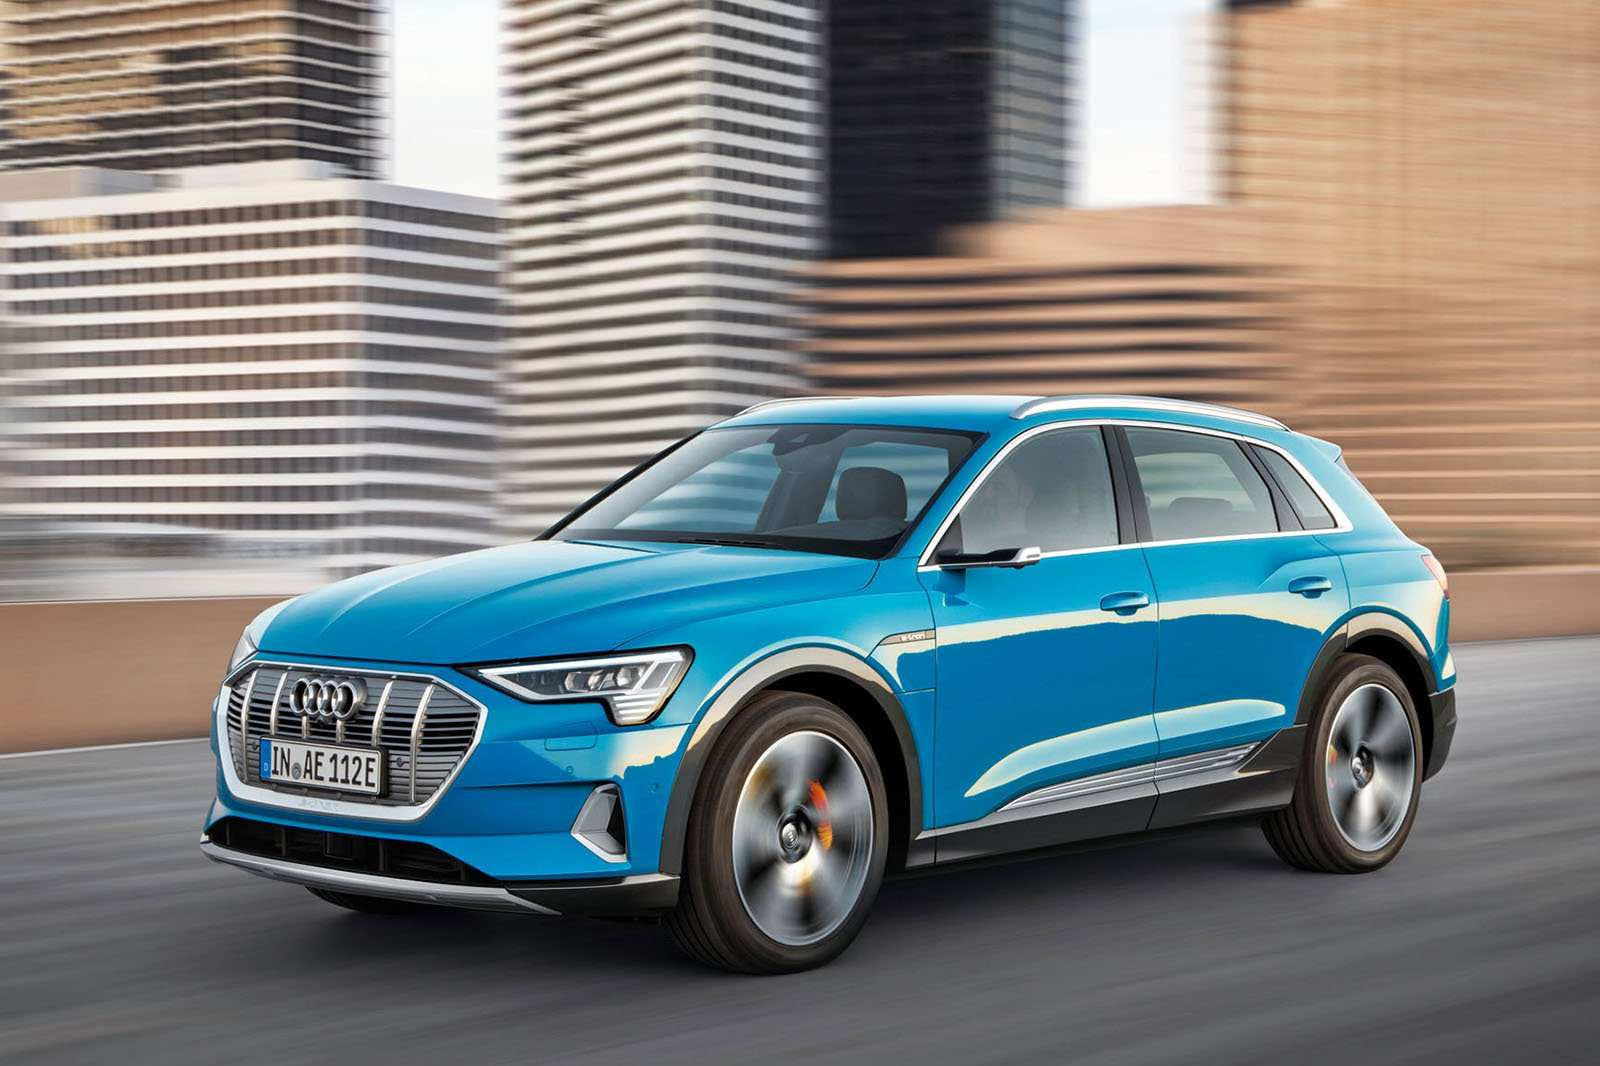 55 All New 2019 Audi Hybrid Suv Price And Release Date Price with 2019 Audi Hybrid Suv Price And Release Date